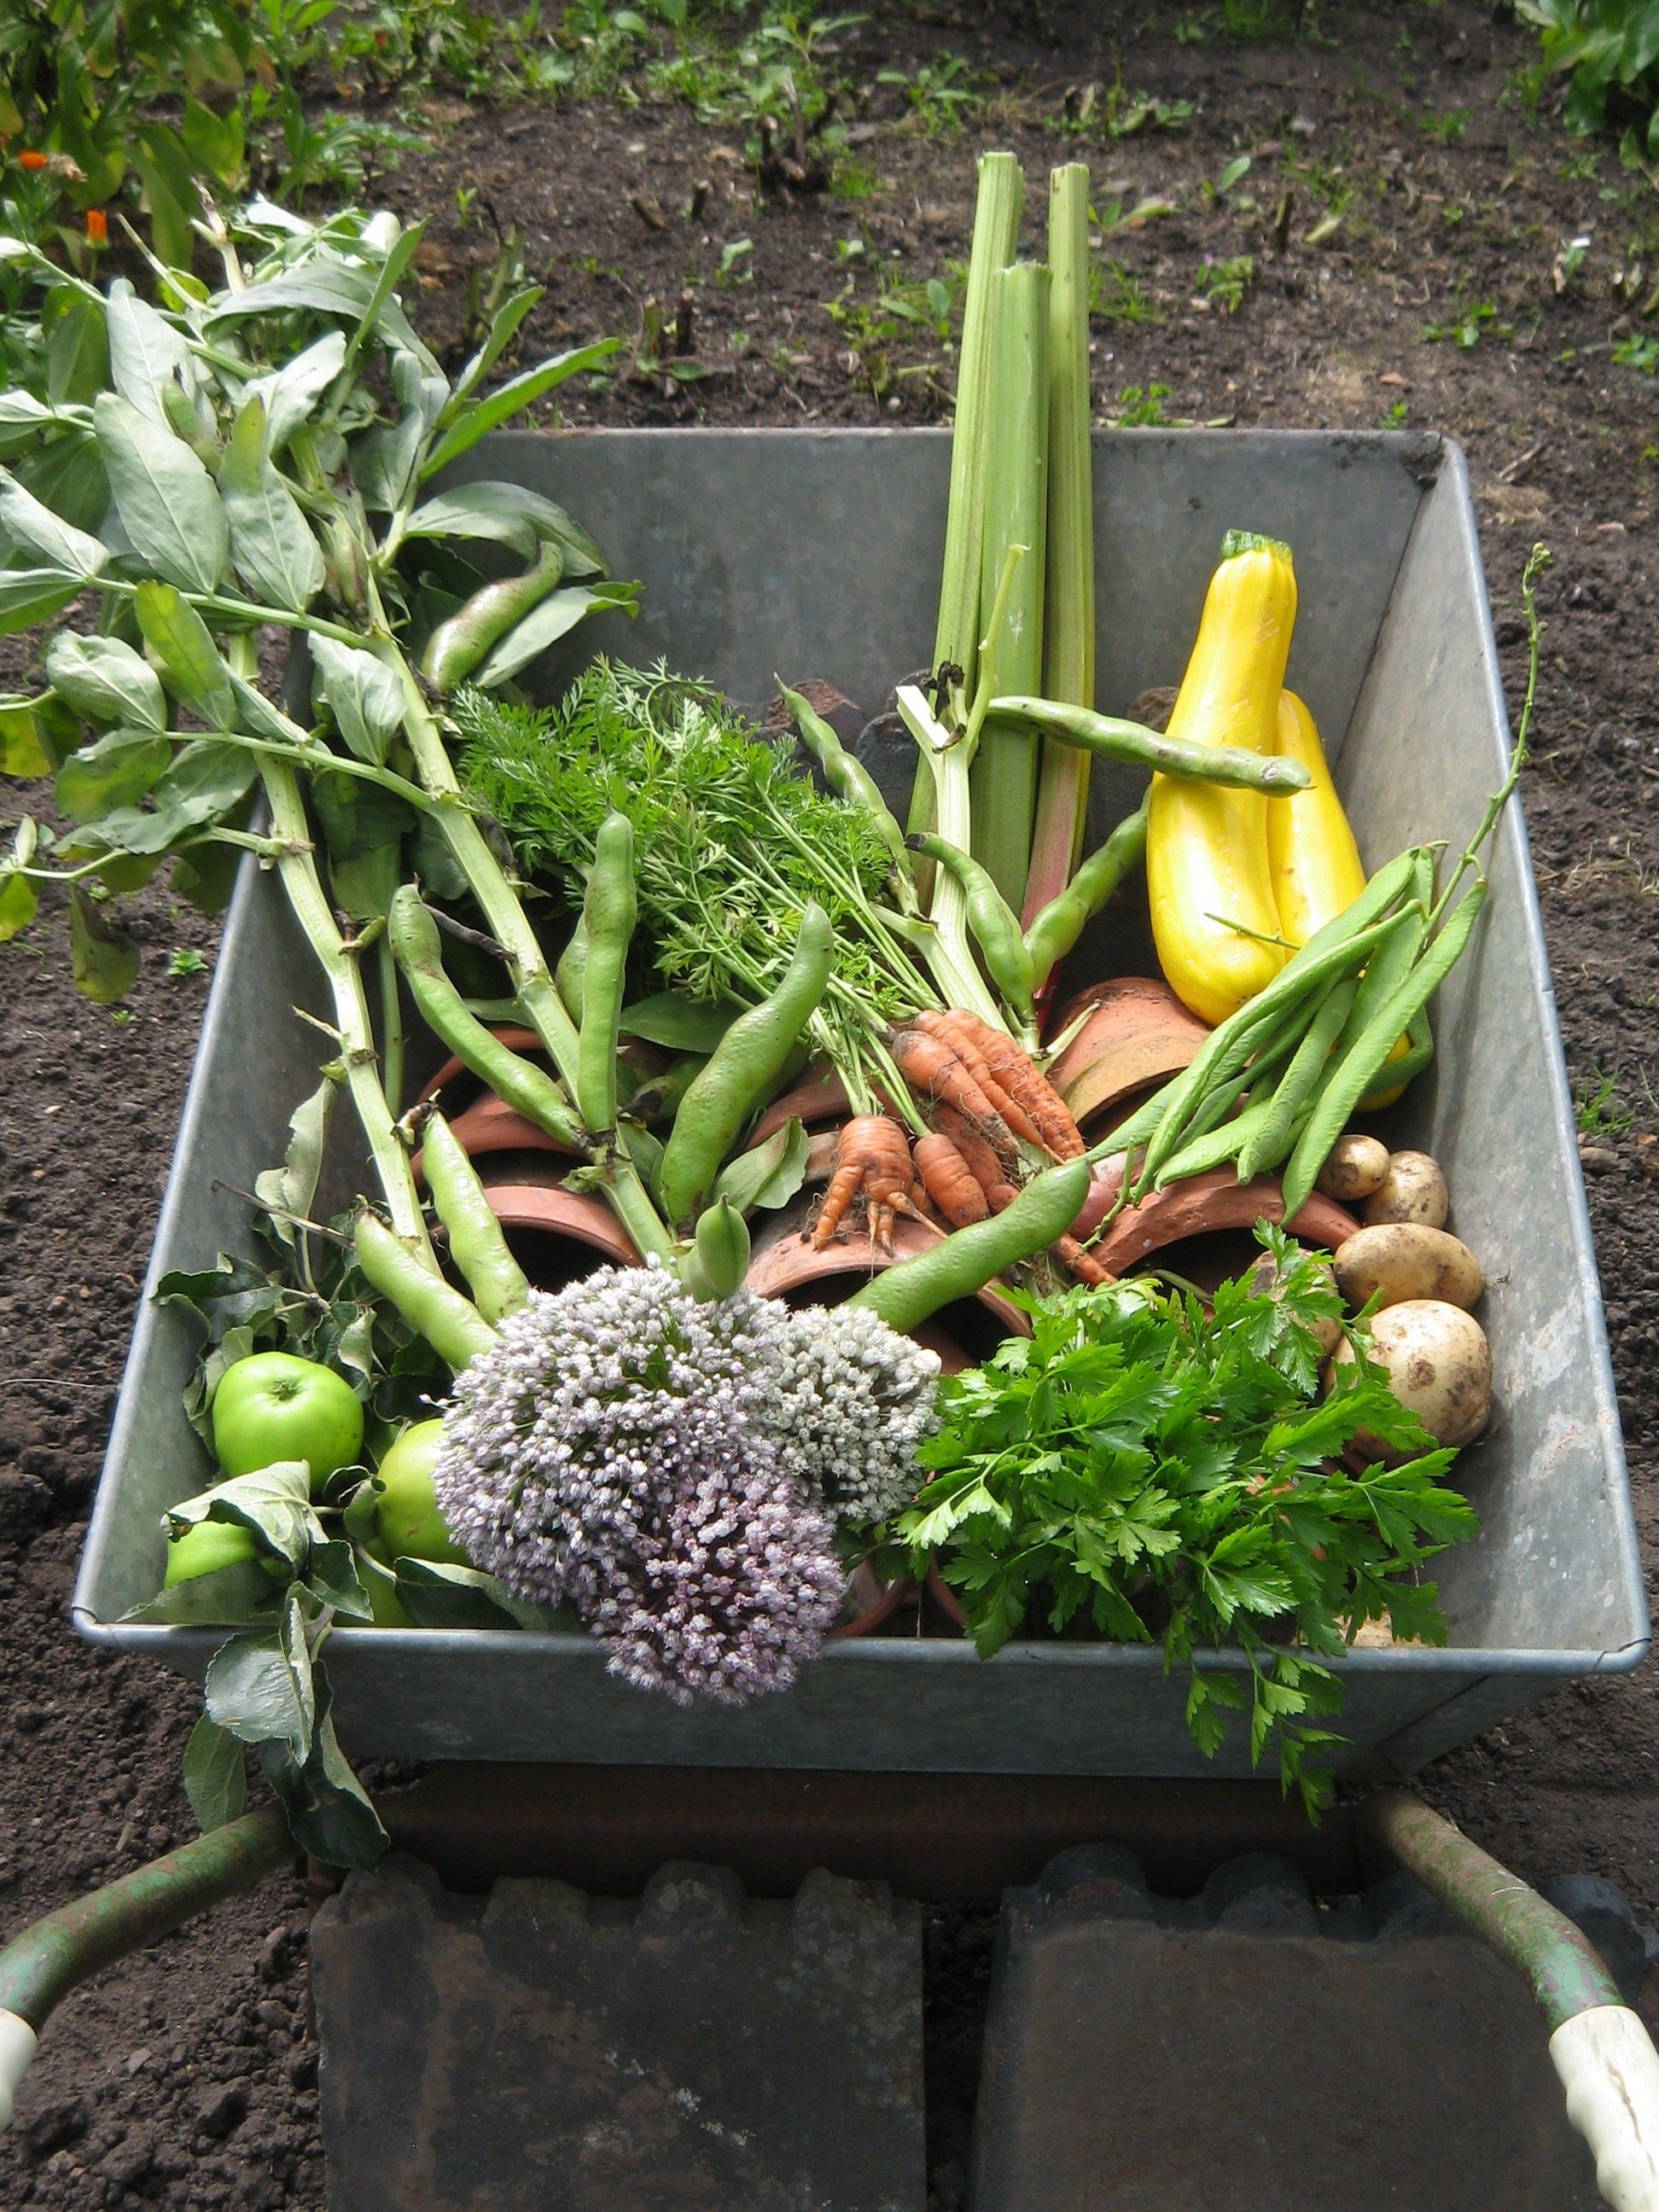 Picturesque A Wheelbarrow Of Produce At Hill Close Gardens Warwick  Hill  With Remarkable A Wheelbarrow Of Produce At Hill Close Gardens Warwick With Captivating Worx Garden Also Bents Garden In Addition Farm And Garden Machinery And Rougemont Gardens As Well As Hand Held Garden Sprayers Additionally Large Black Garden Planters From Itpinterestcom With   Remarkable A Wheelbarrow Of Produce At Hill Close Gardens Warwick  Hill  With Captivating A Wheelbarrow Of Produce At Hill Close Gardens Warwick And Picturesque Worx Garden Also Bents Garden In Addition Farm And Garden Machinery From Itpinterestcom